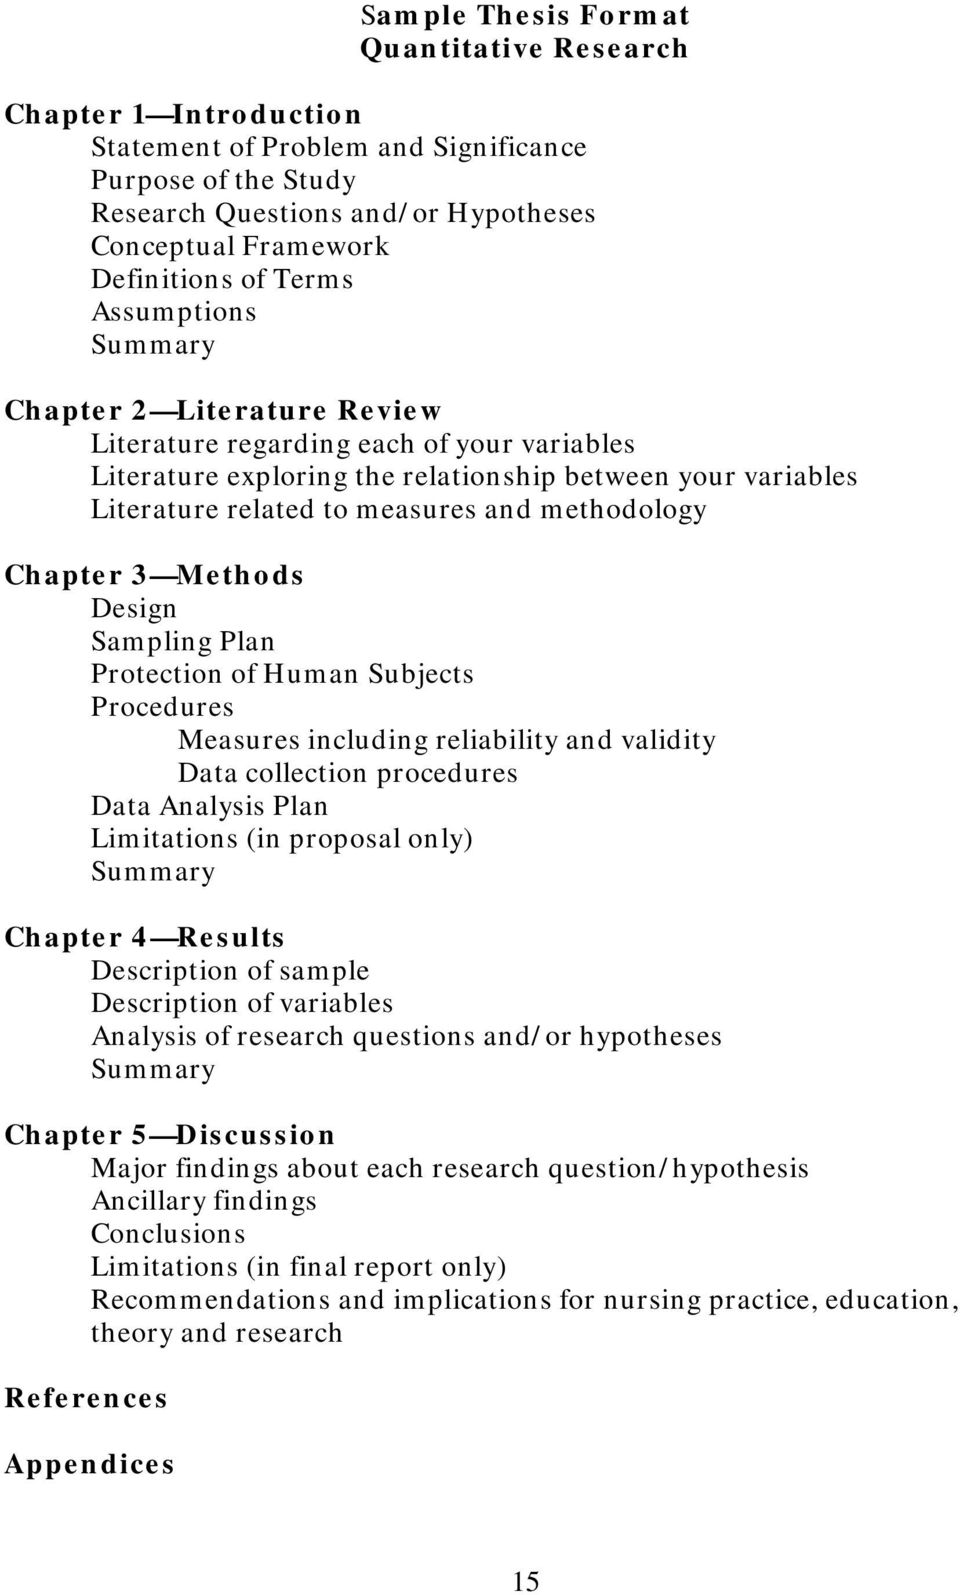 methodology Chapter 3 Methods Design Sampling Plan Protection of Human Subjects Procedures Measures including reliability and validity Data collection procedures Data Analysis Plan Limitations (in